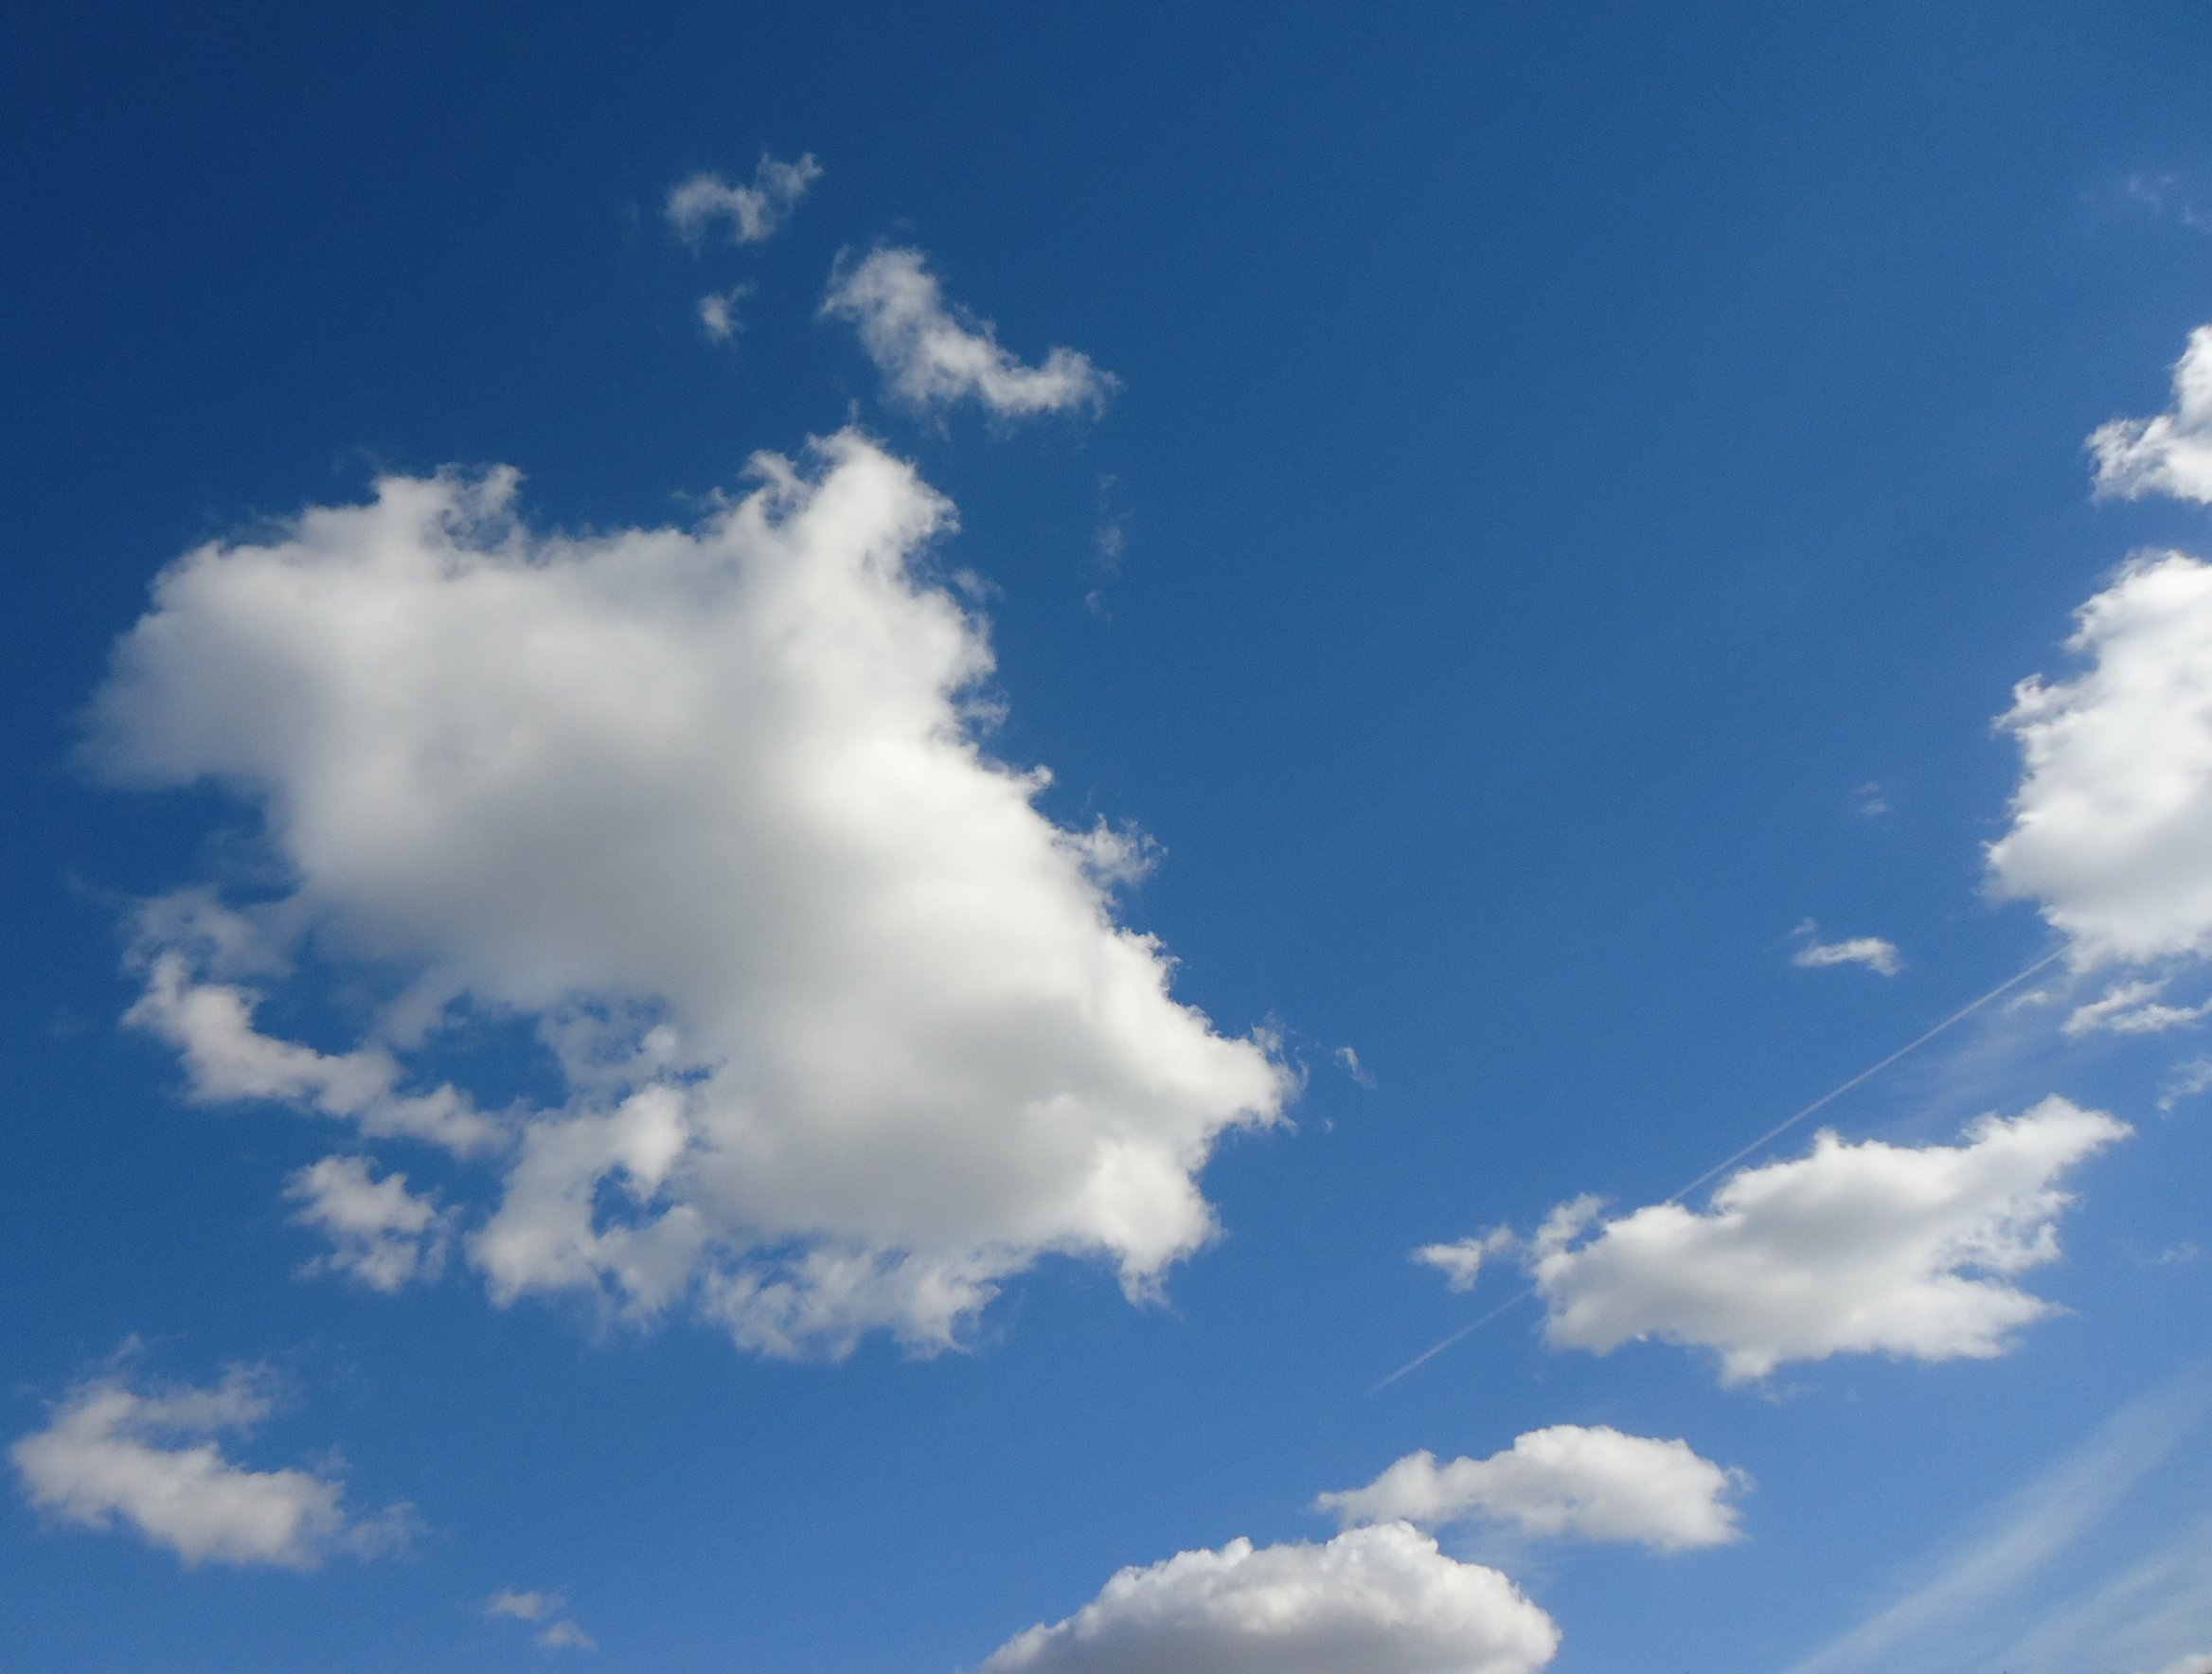 Clouds On A Mostly Clear Sky Image